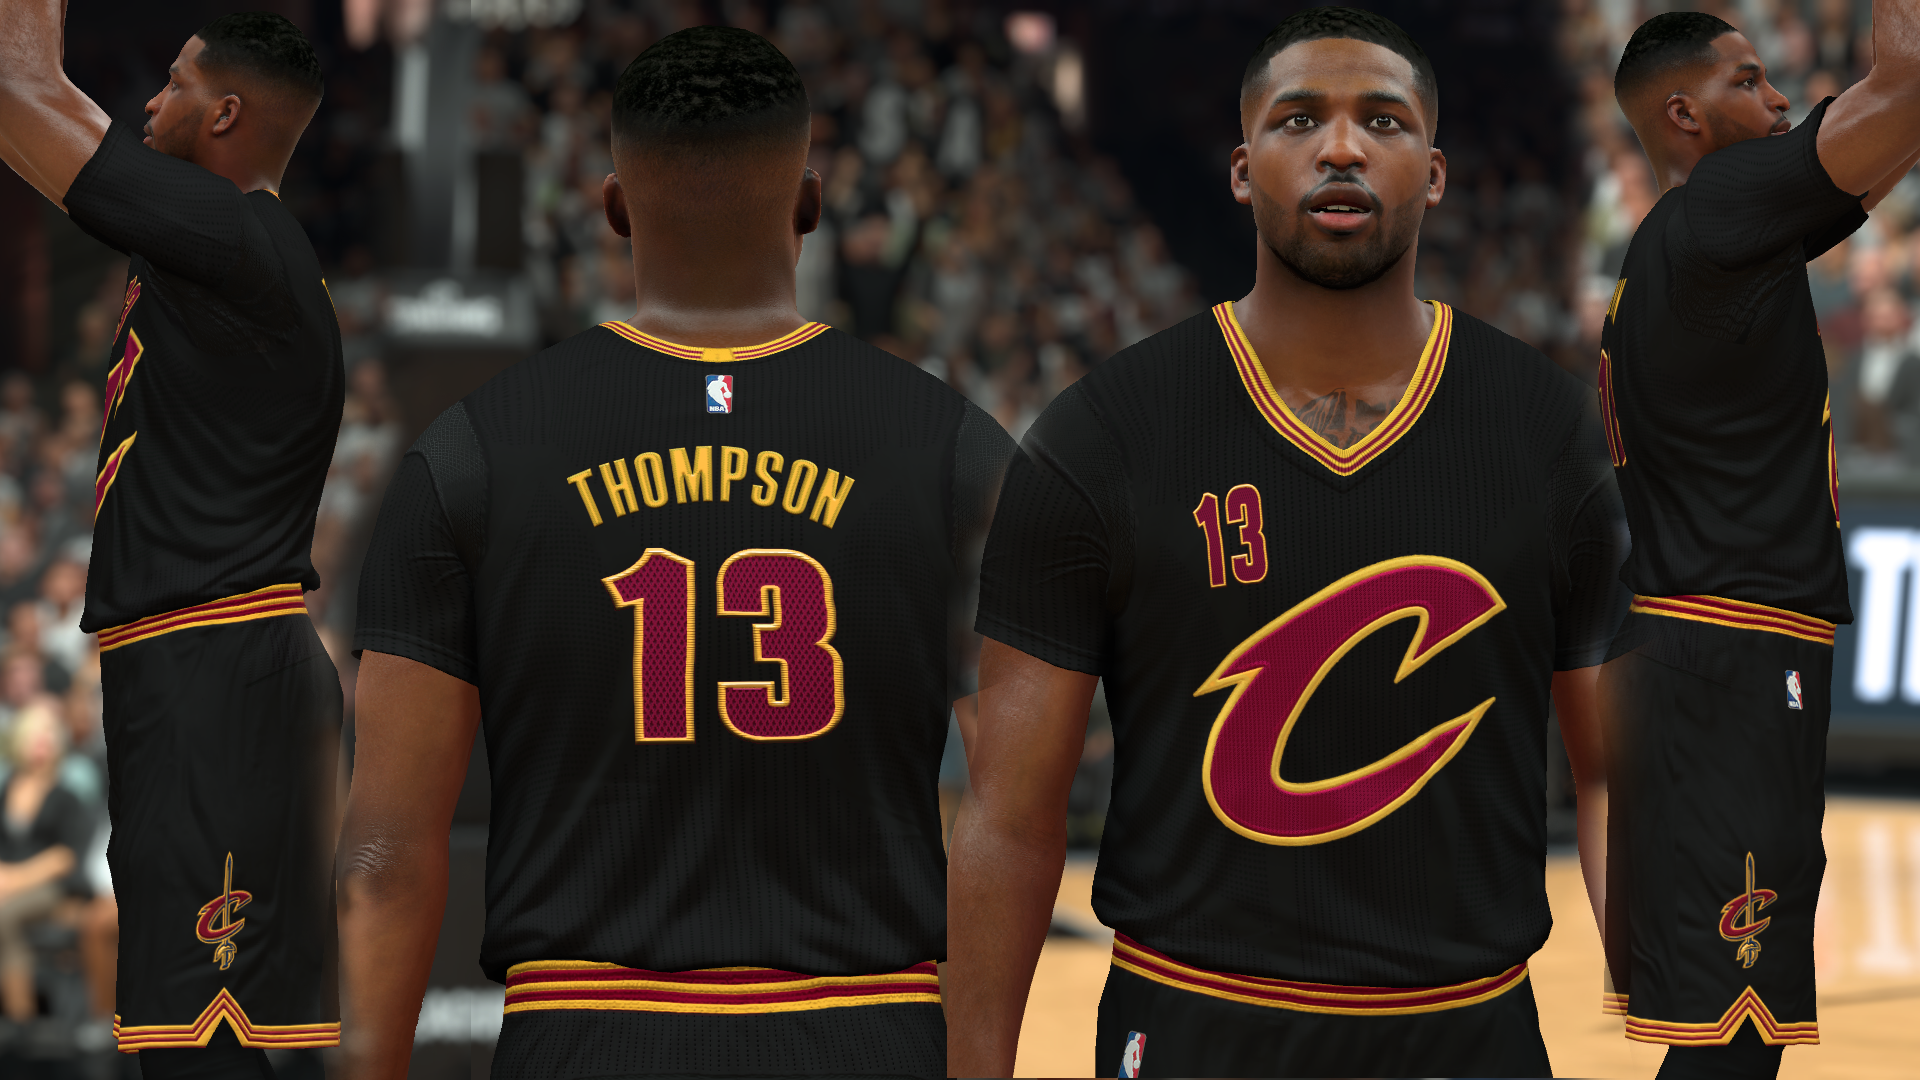 Cleveland Cavaliers Pride Jersey